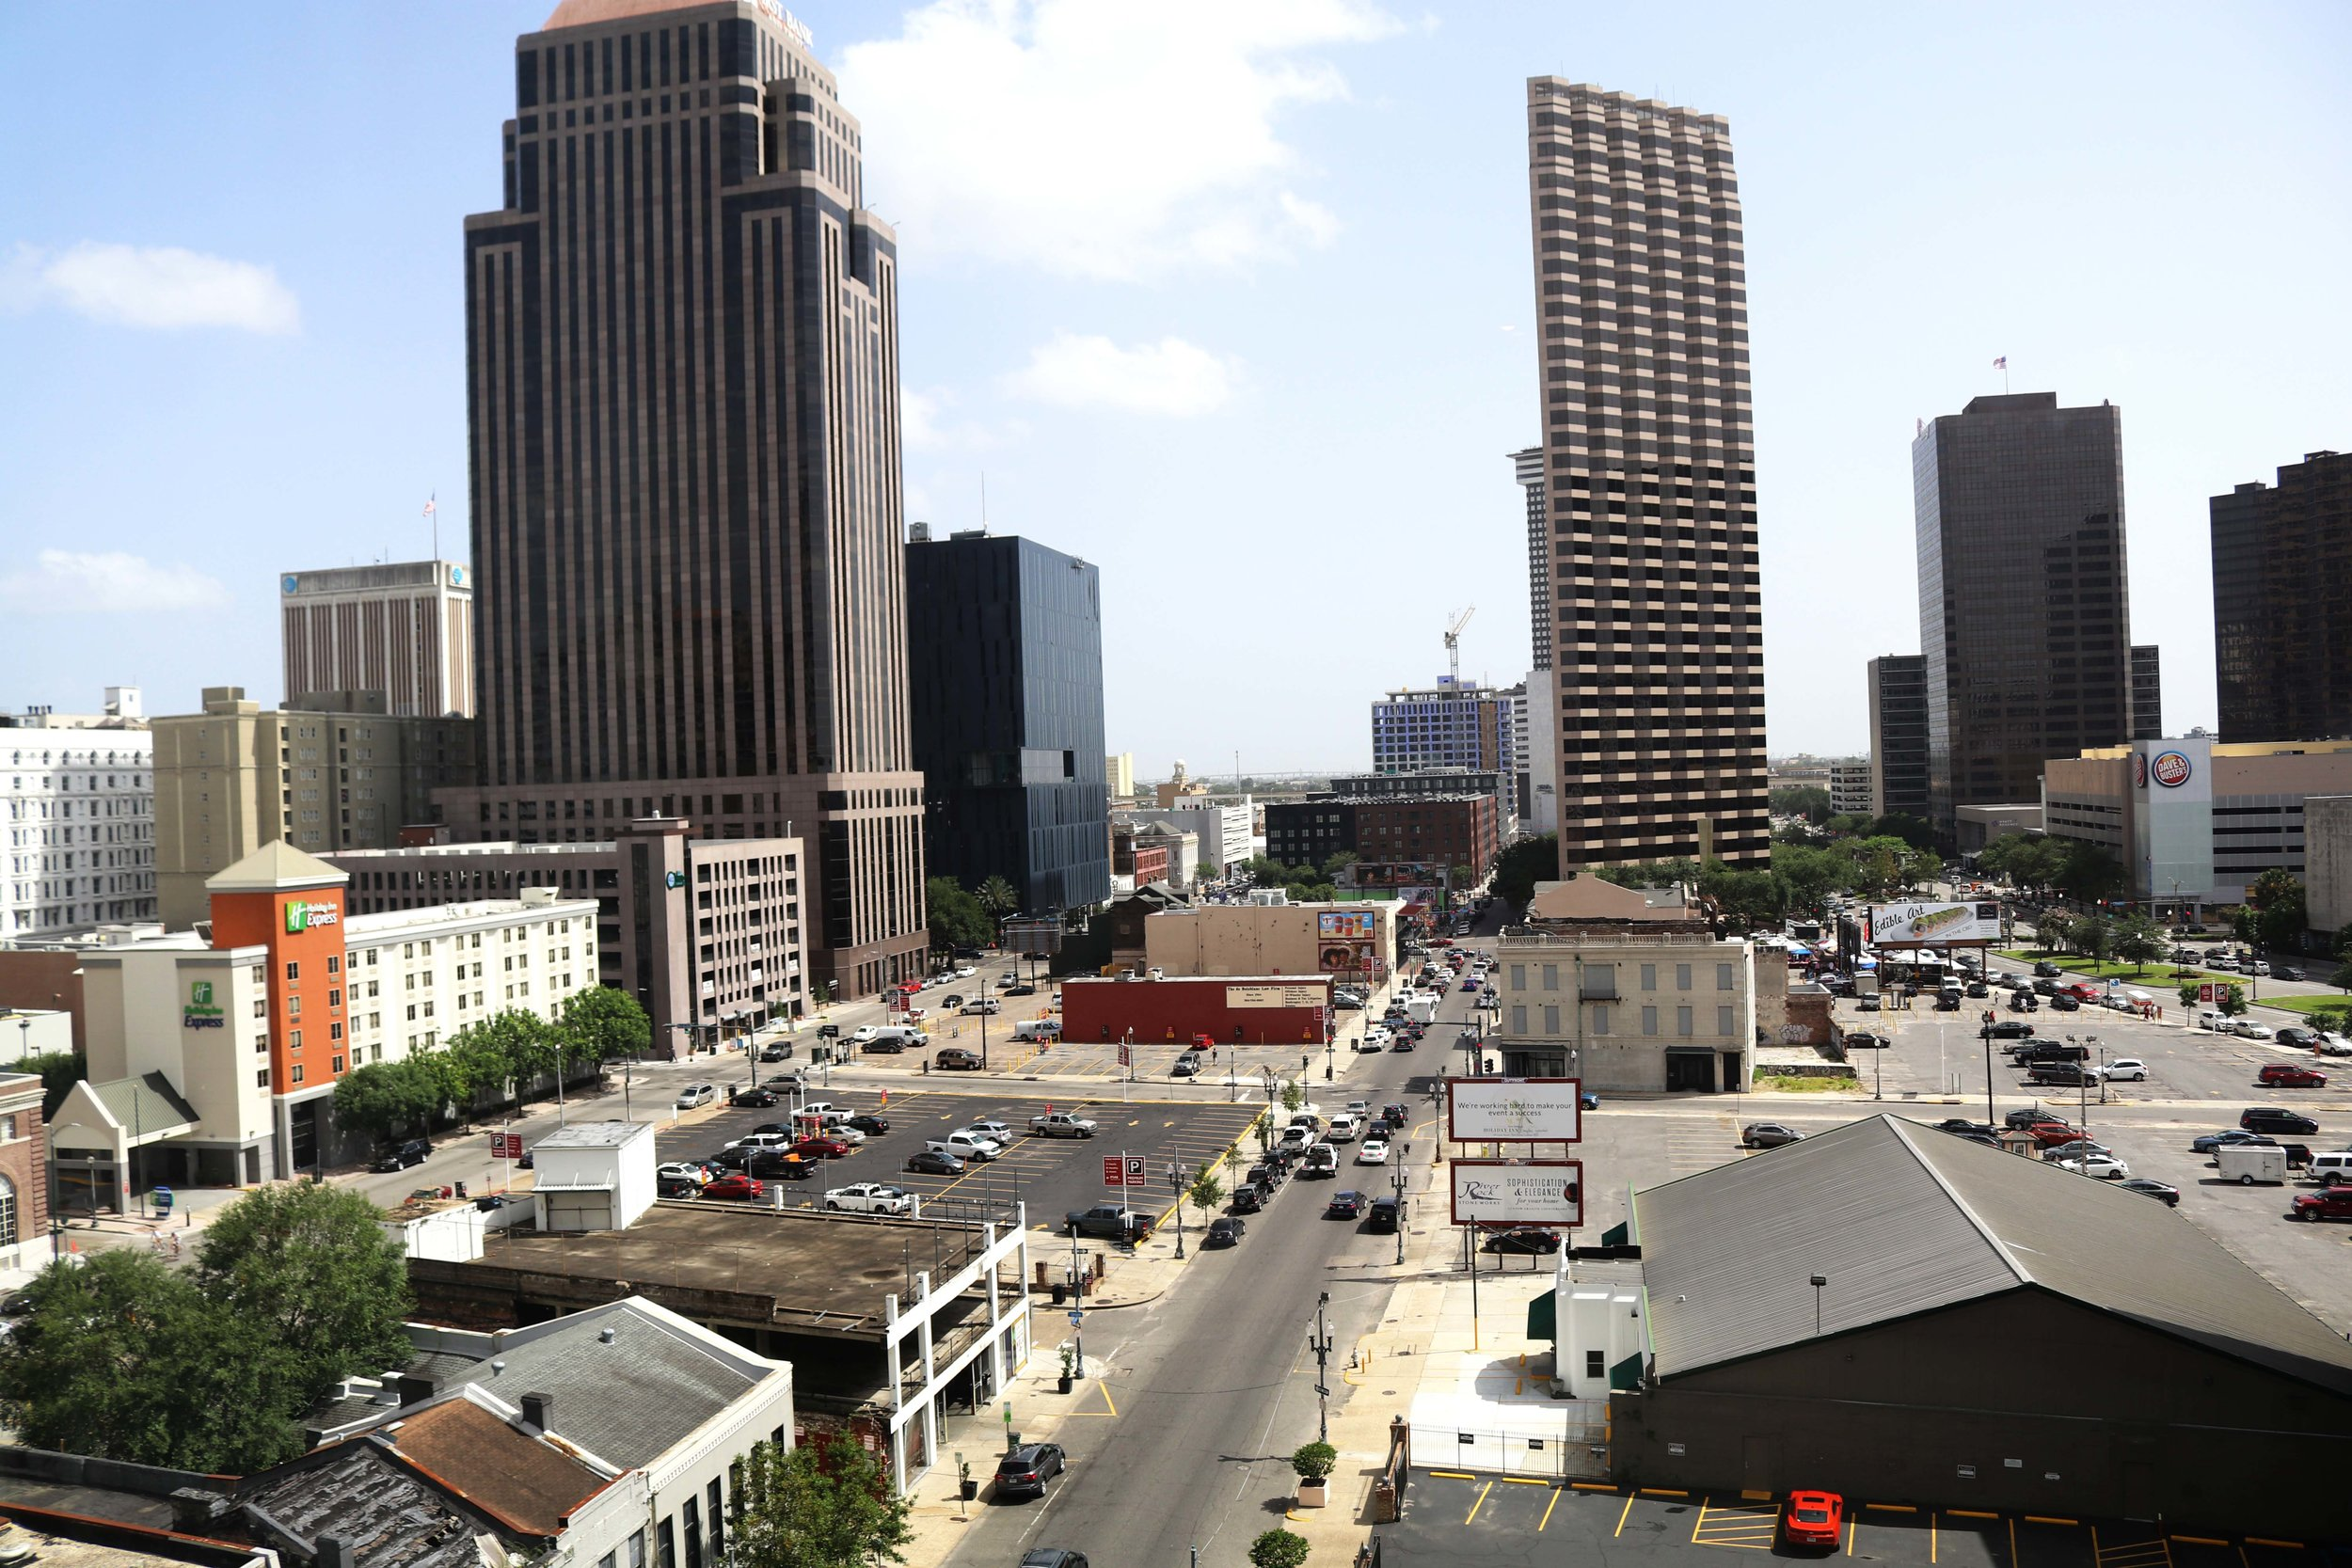 Neighborhood View of Downtown New Orleans